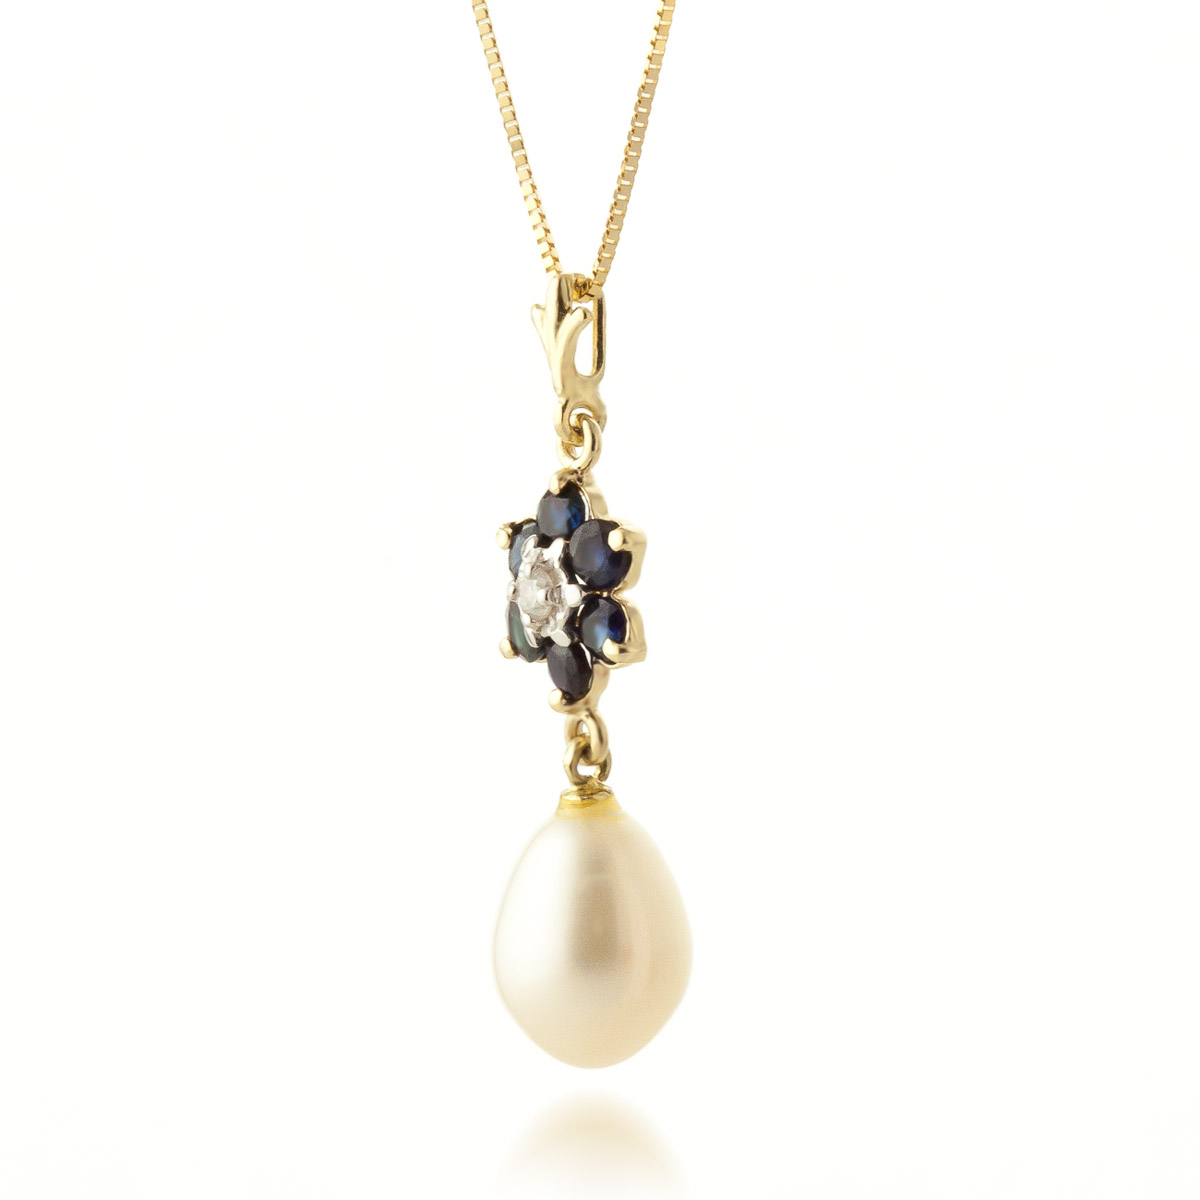 Sapphire and Diamond Flower Pendant Necklace 3.8ctw in 9ct Gold